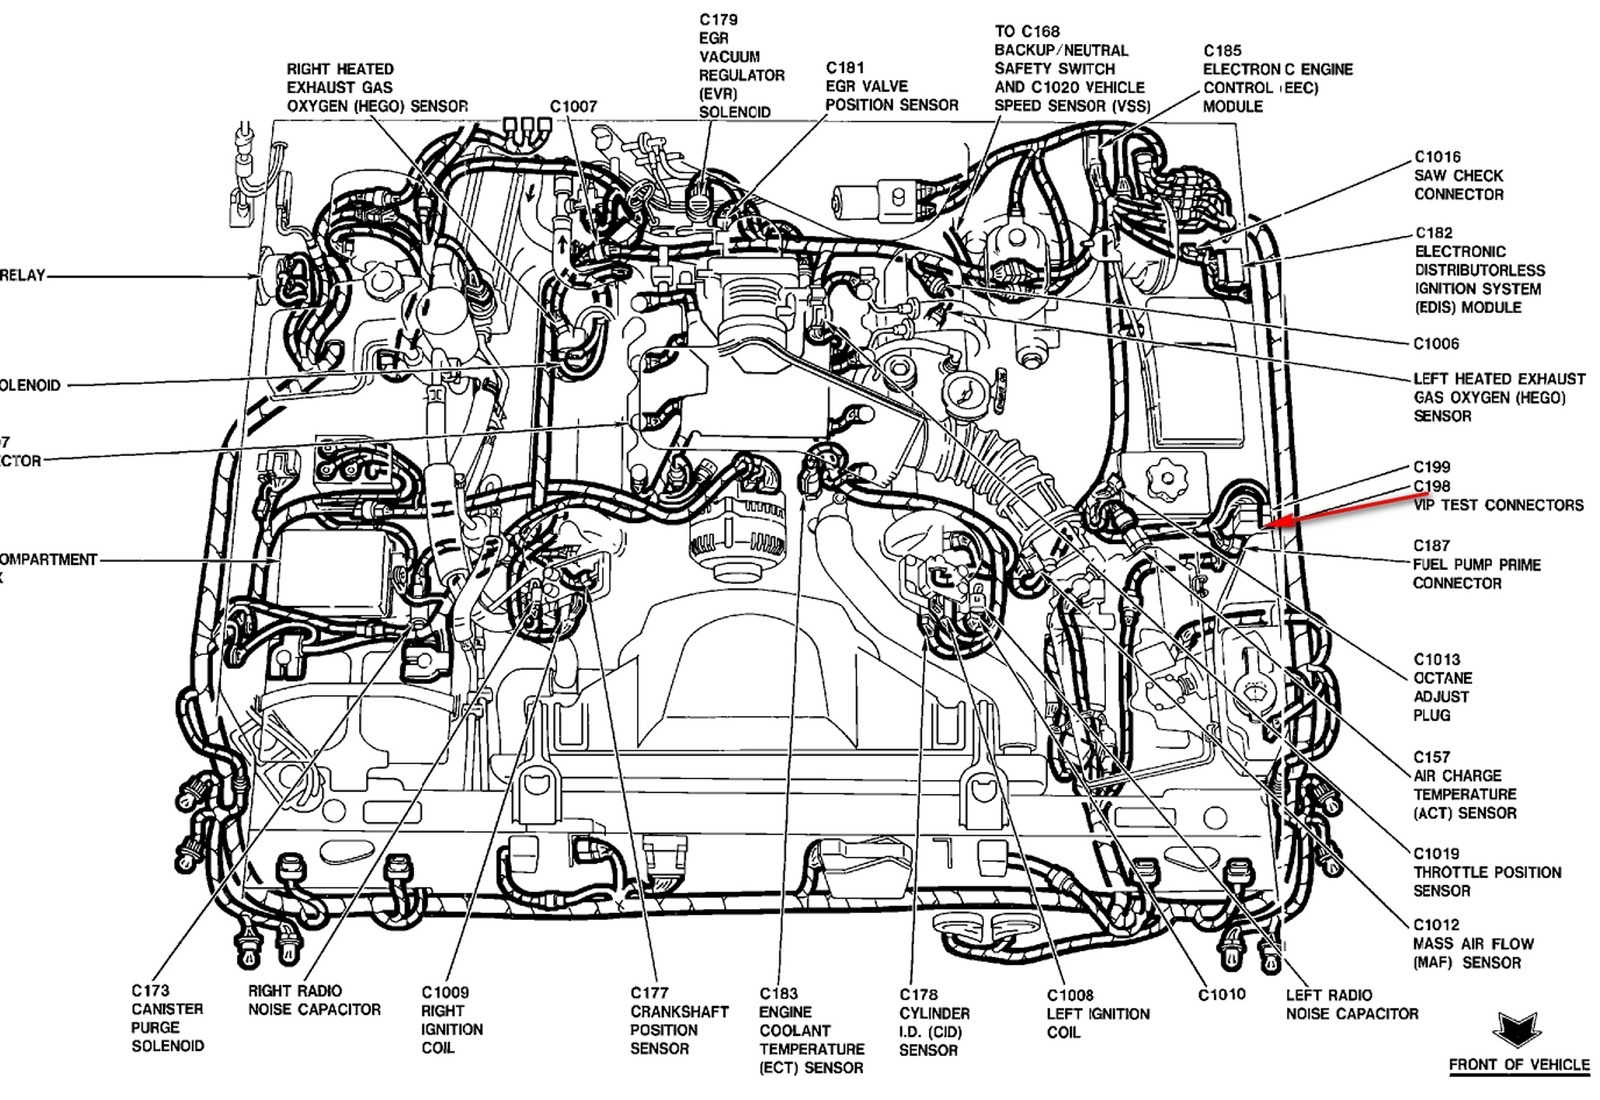 1995 bmw 318i fuse box diagram 1995 free engine image for user manual  download